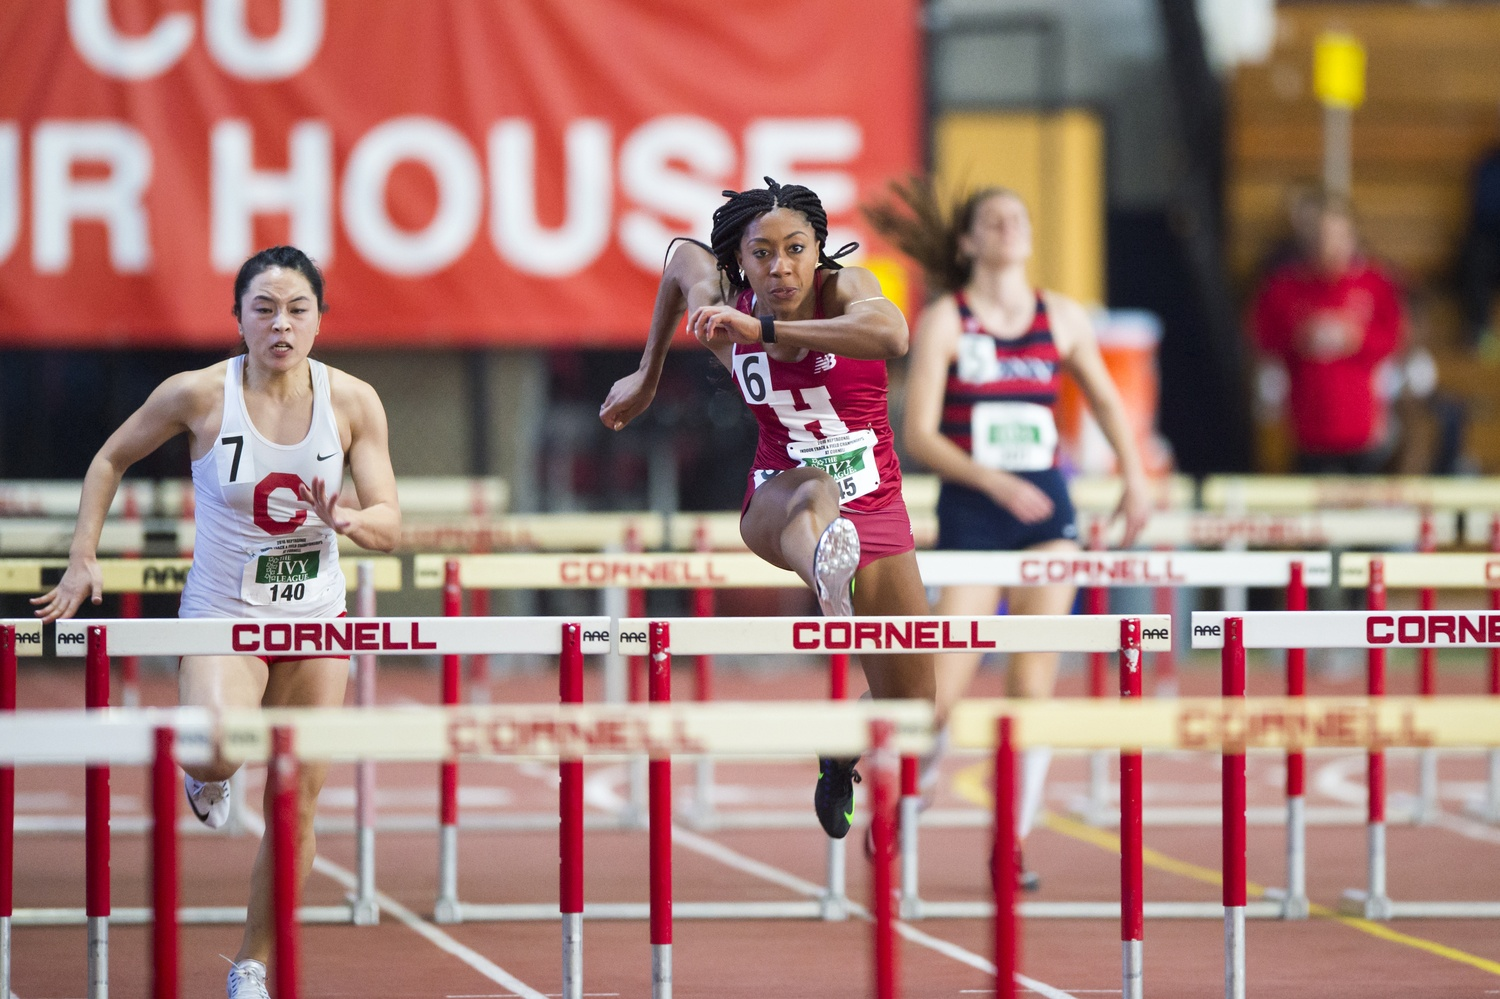 Sprinter Autumne Franklin '16 was one of five athletes to qualify for the USA Olympic trials this summer, finishing sixth place overall in the women's 400 meter hurdles.